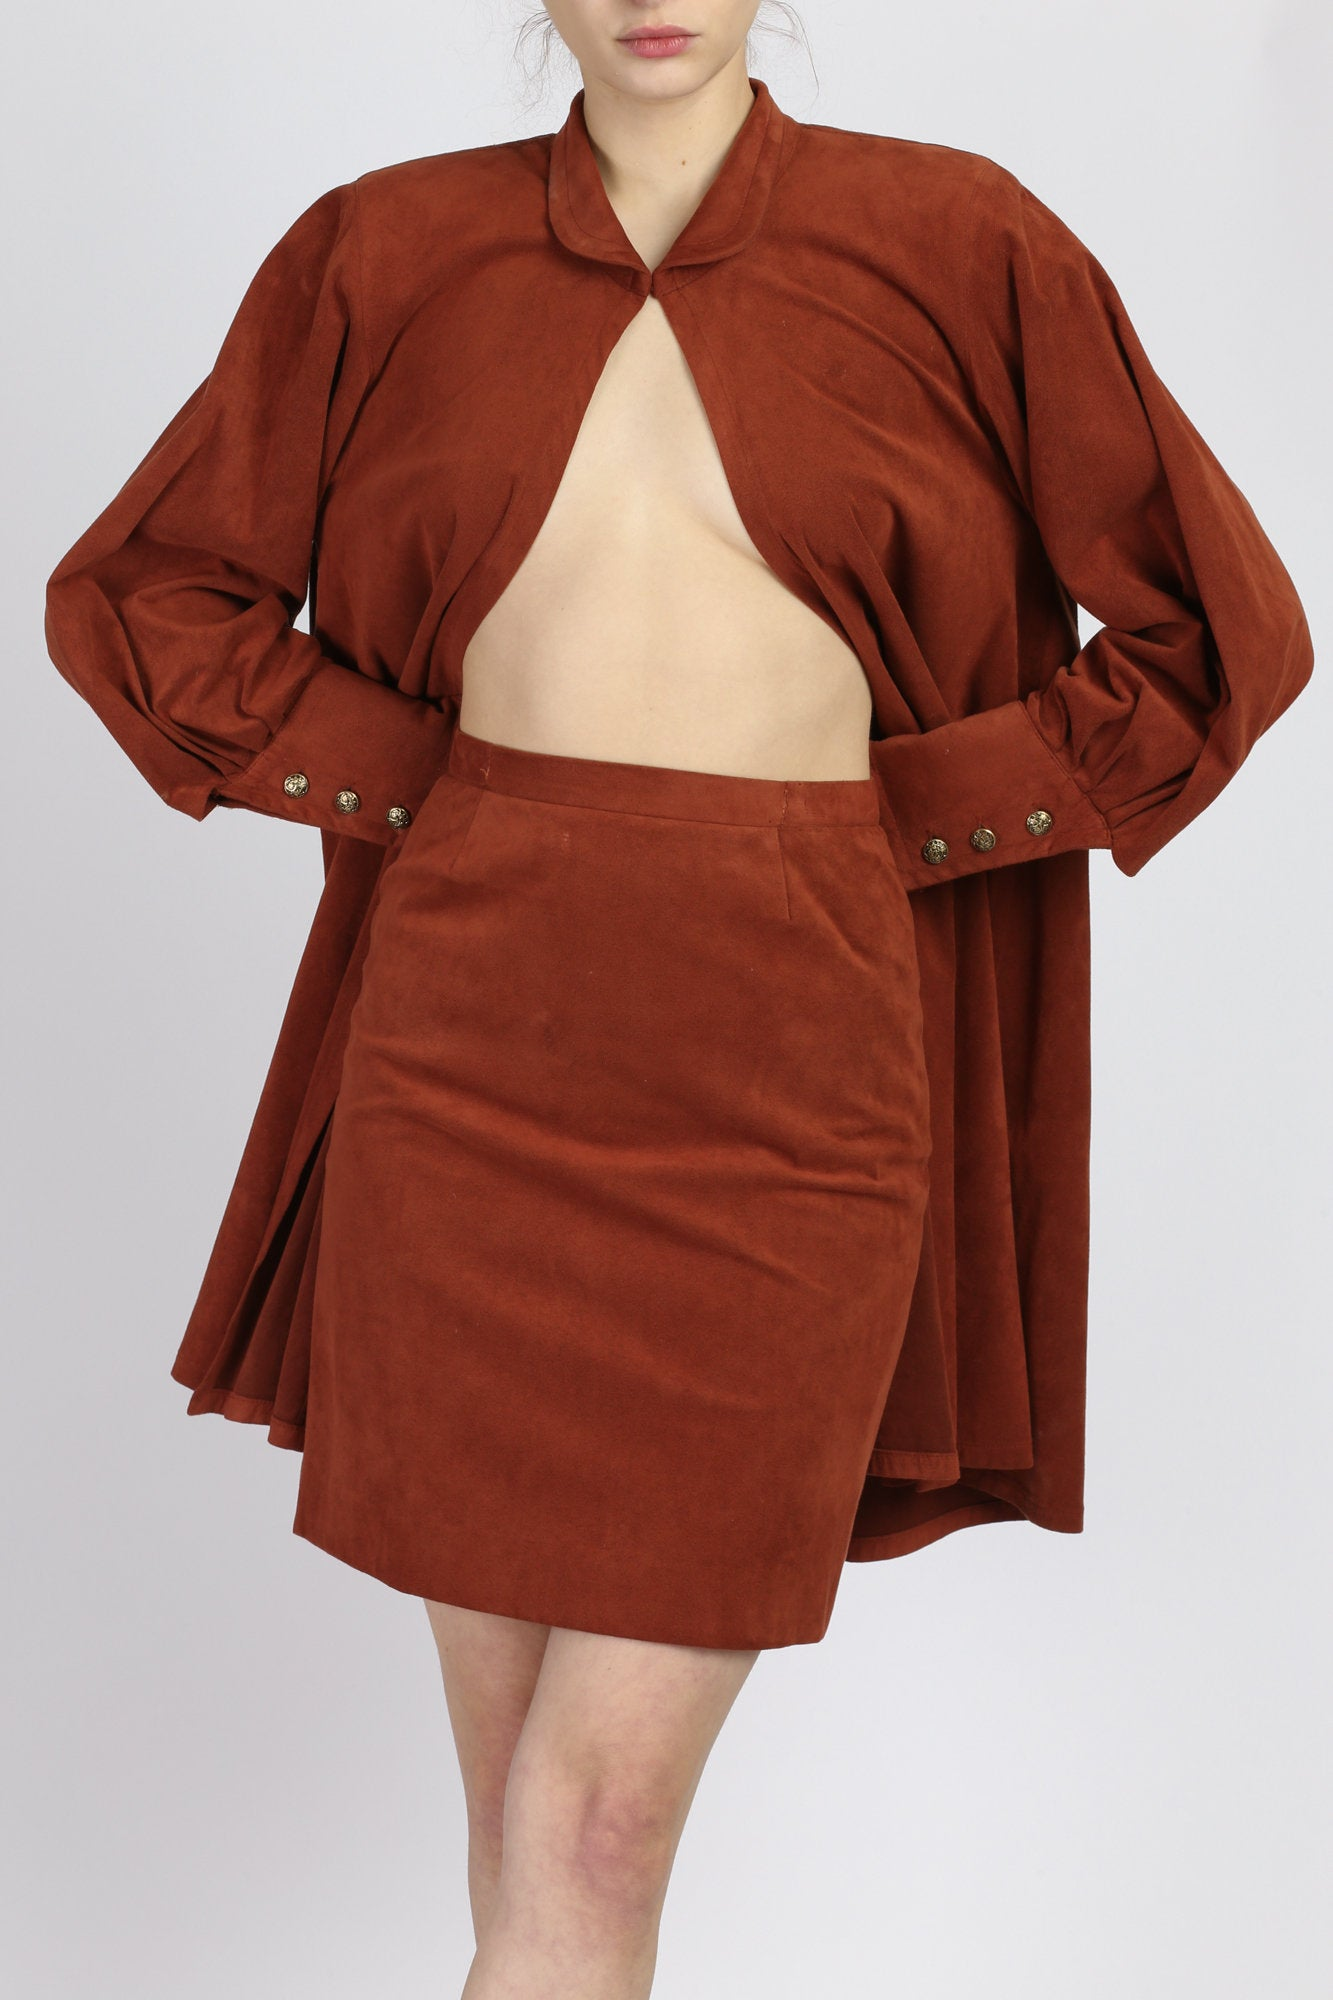 Vintage Lilli Ann Rust Red Ultra-Suede Open Front Coat & Skirt Set - Small